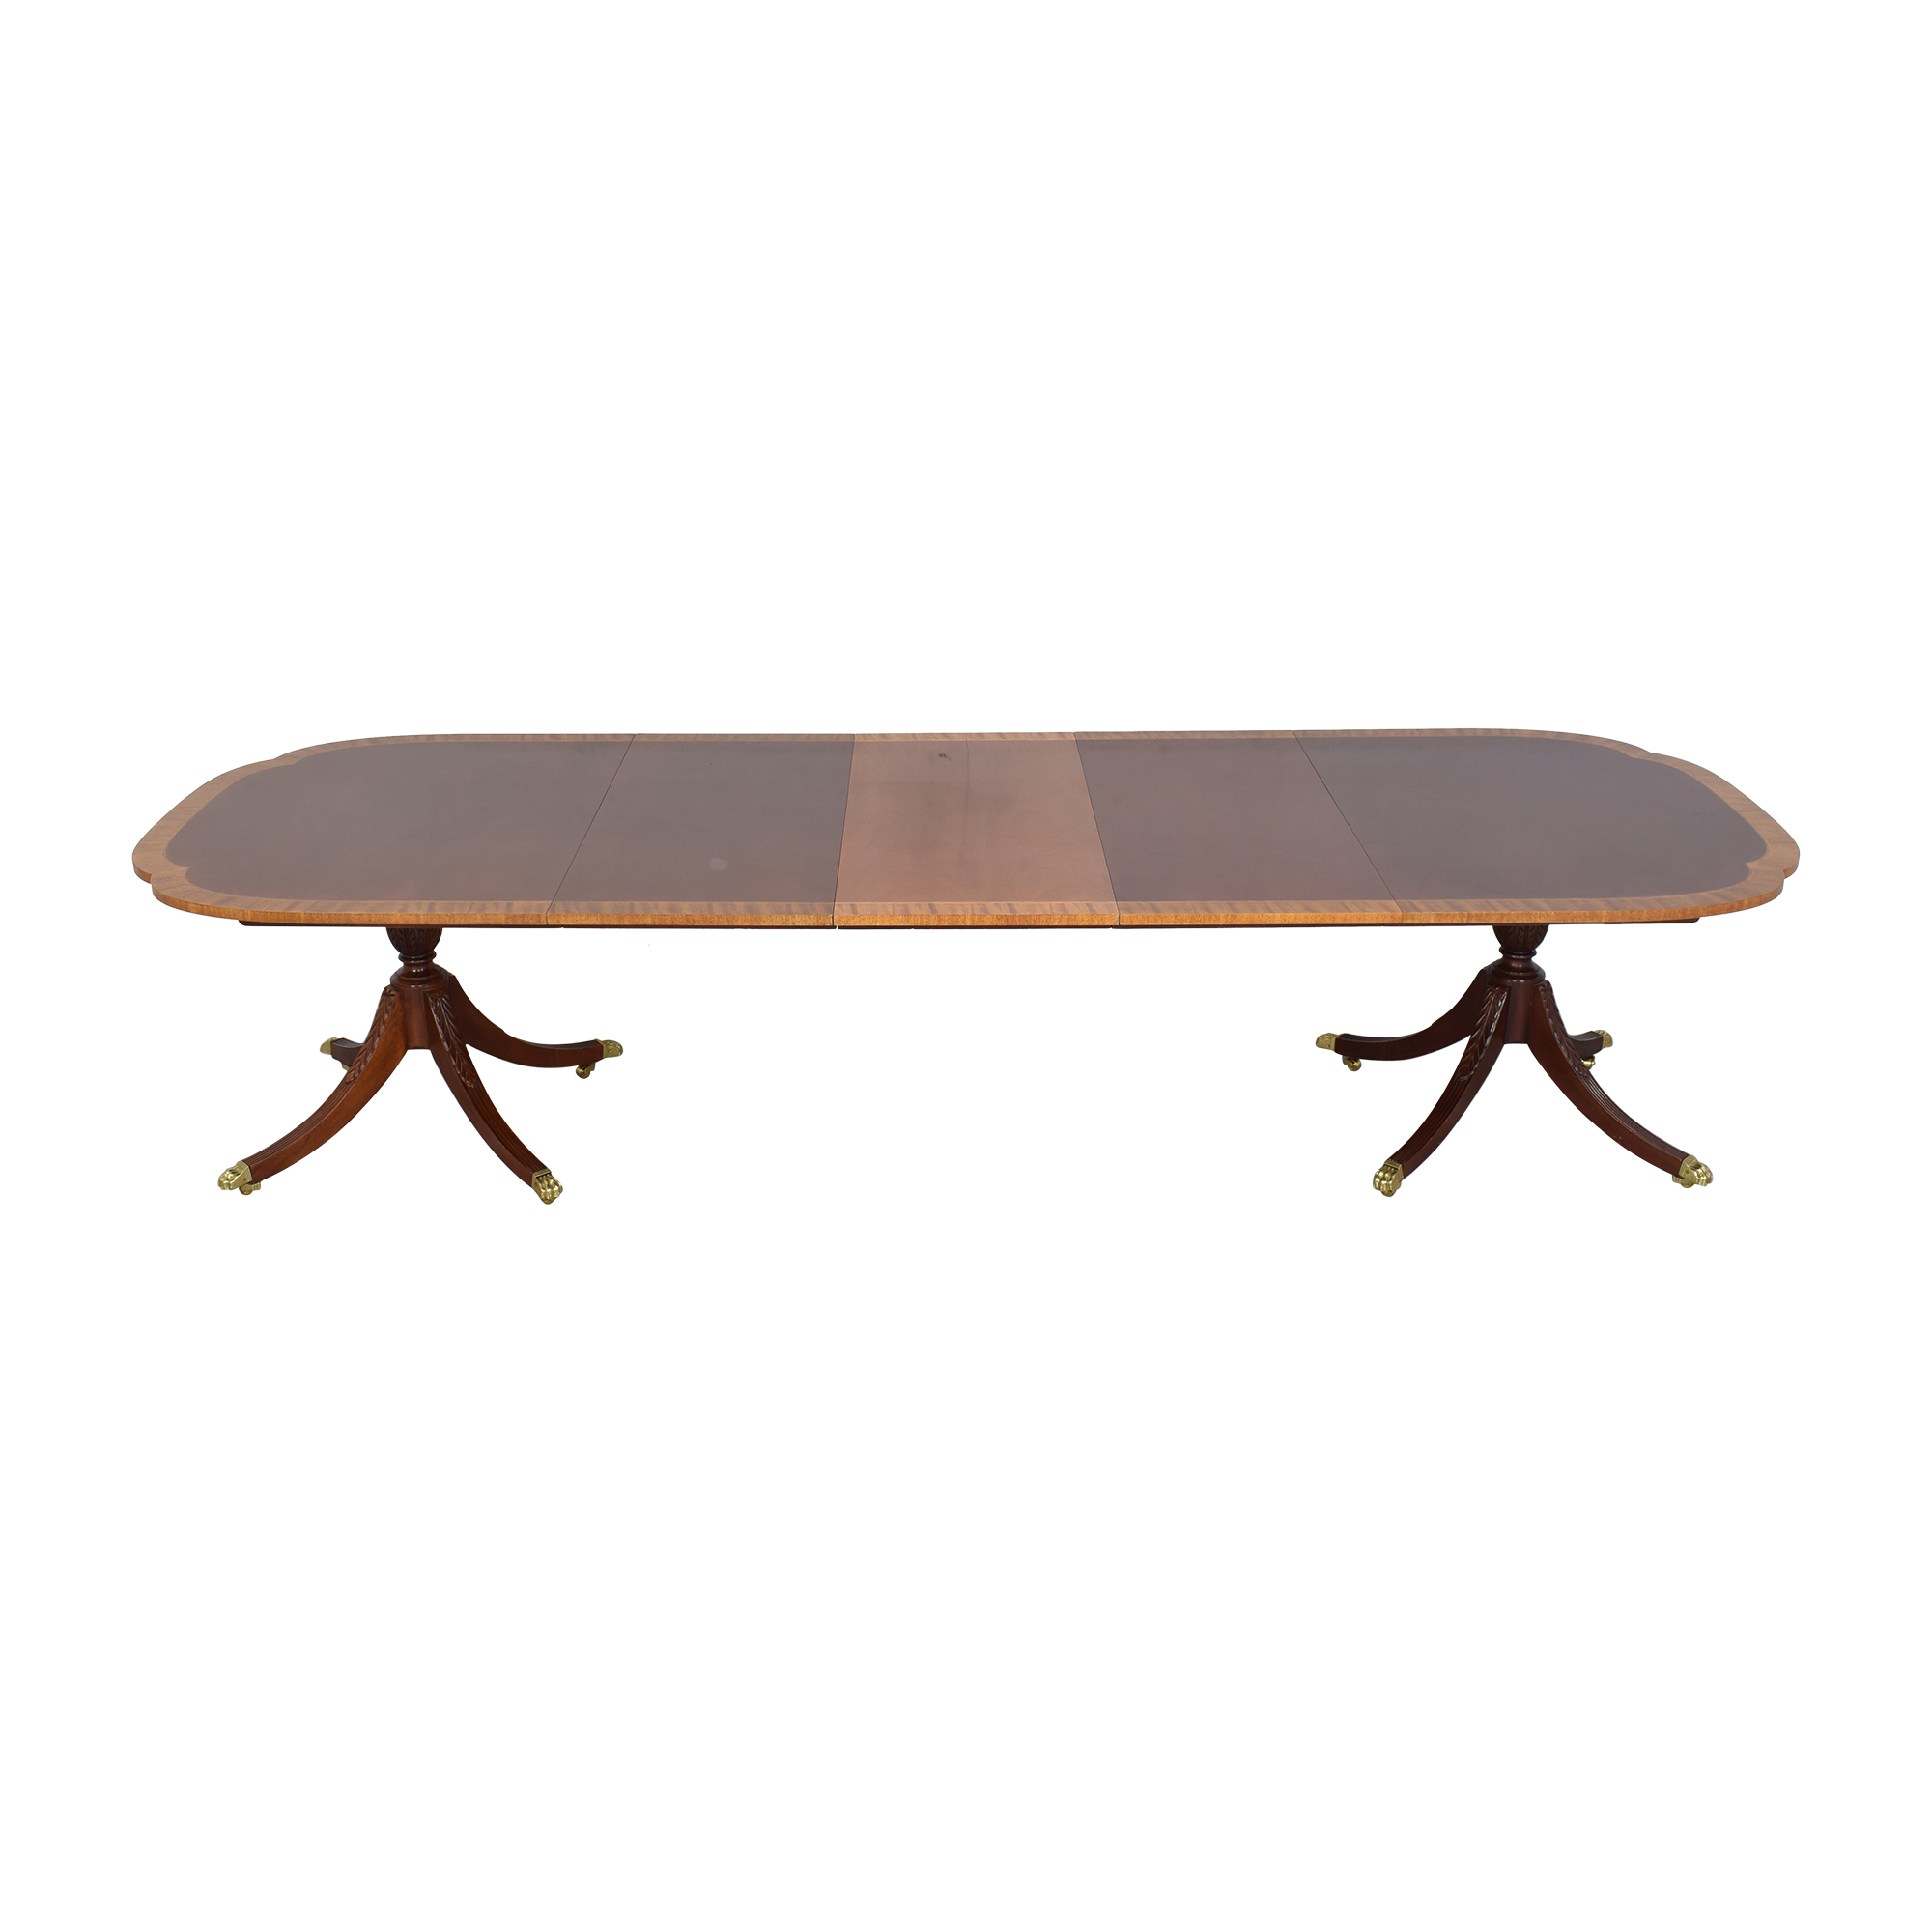 buy Councill Councill Craftsman Banded Top Dining Table online